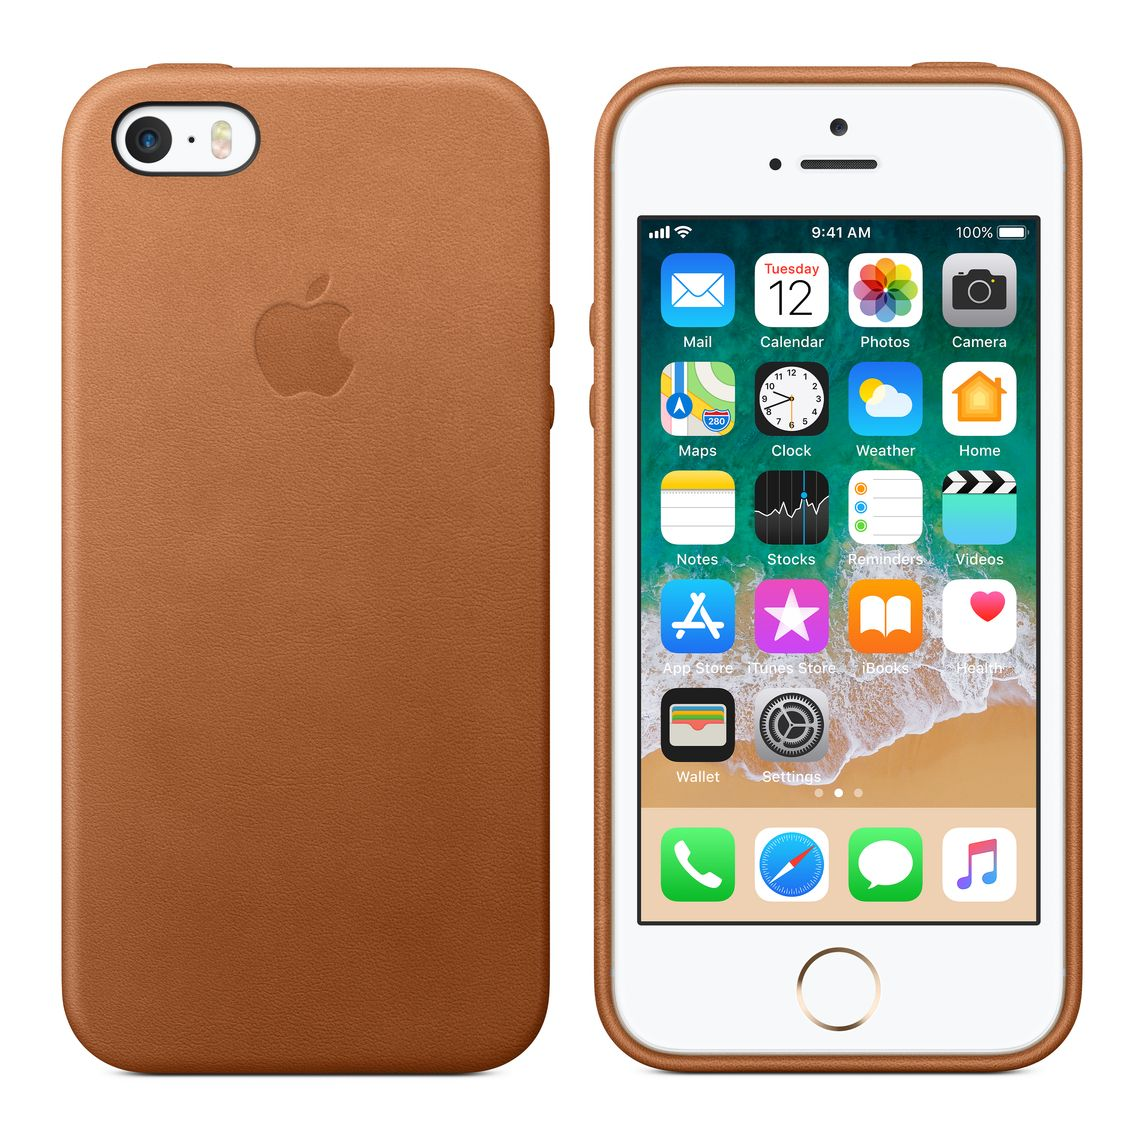 super popular 9be21 ed1b1 iPhone SE Leather Case - Saddle Brown